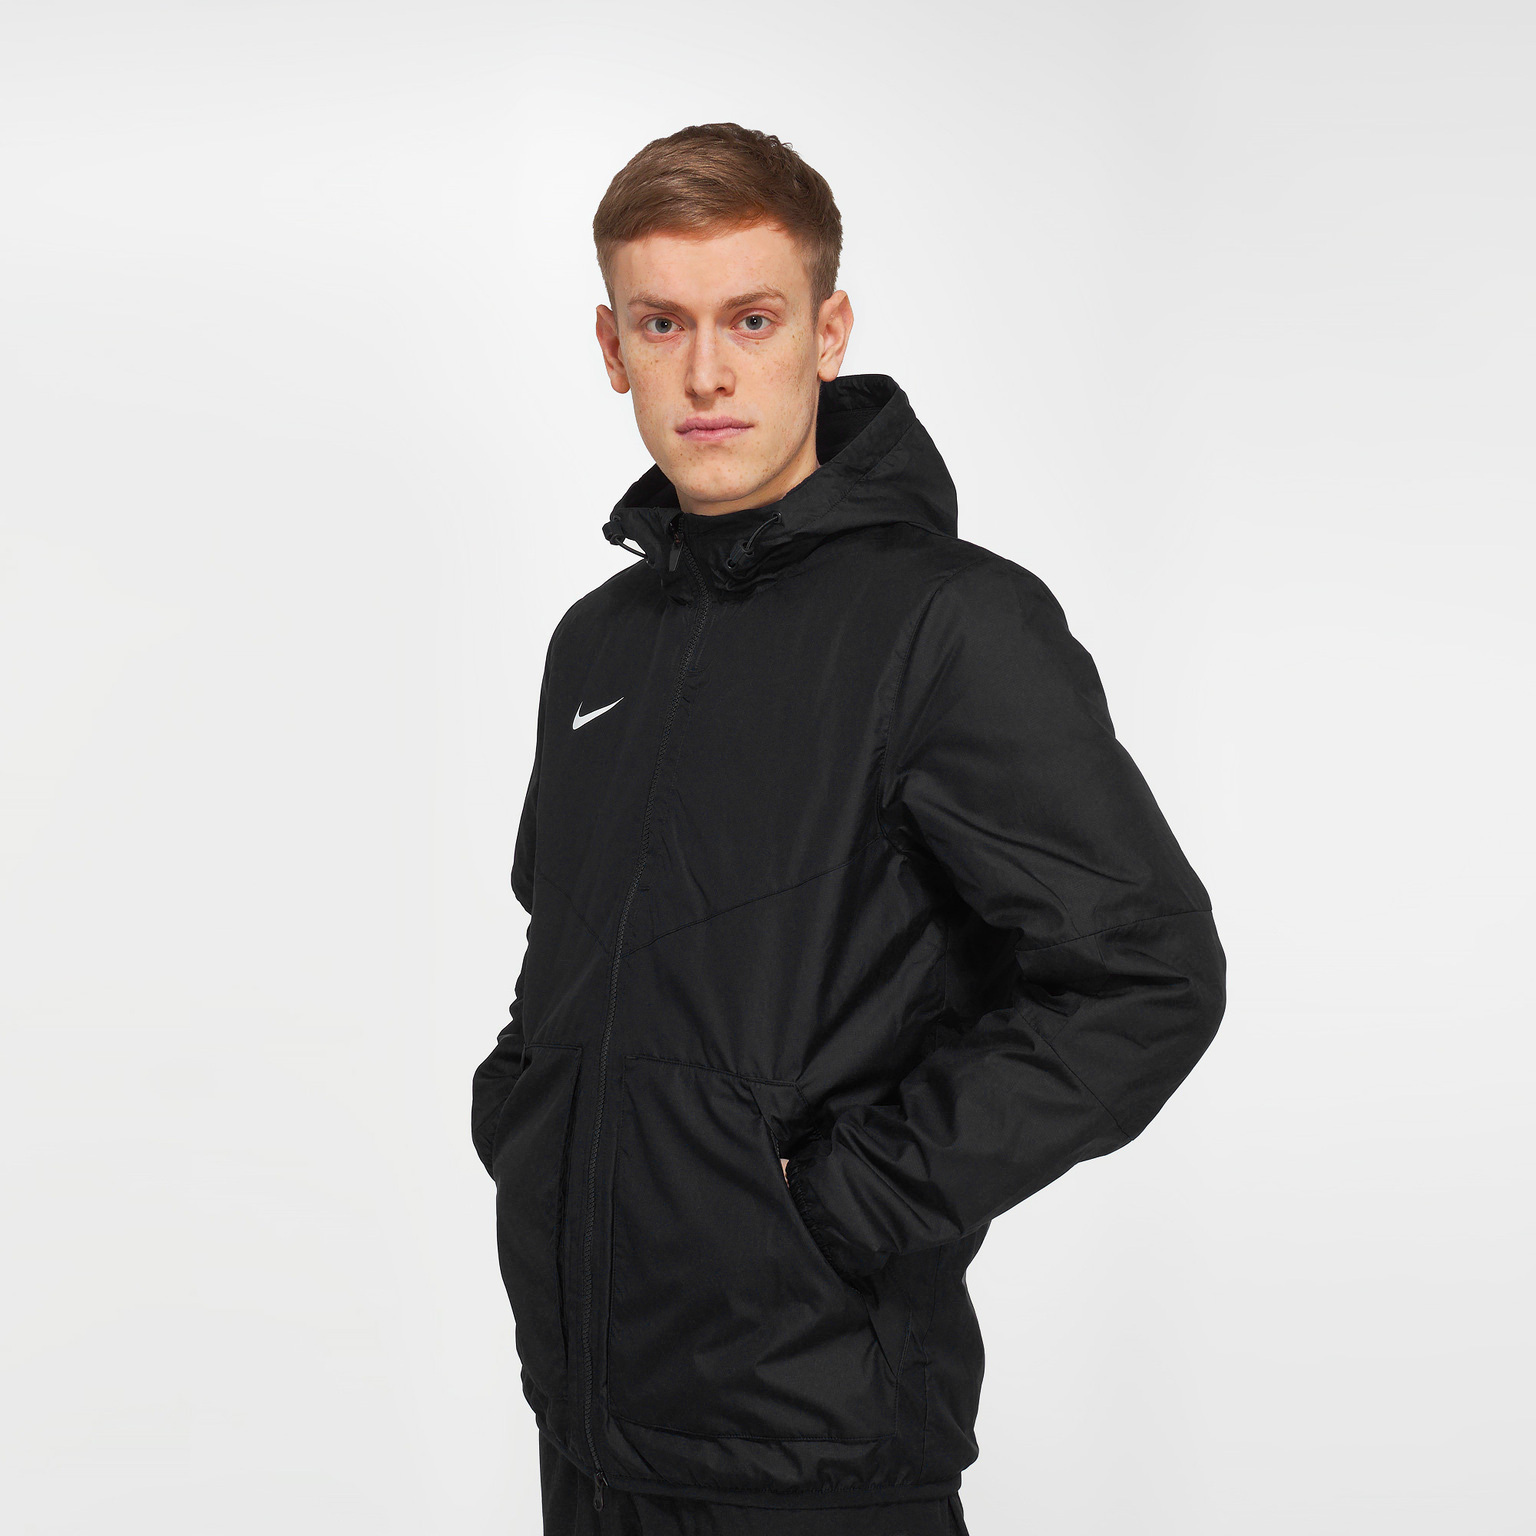 Куртки/Пуховики Nike Куртка Nike Team Fall JKT 645550-010 20pcs lot 2513n to 252